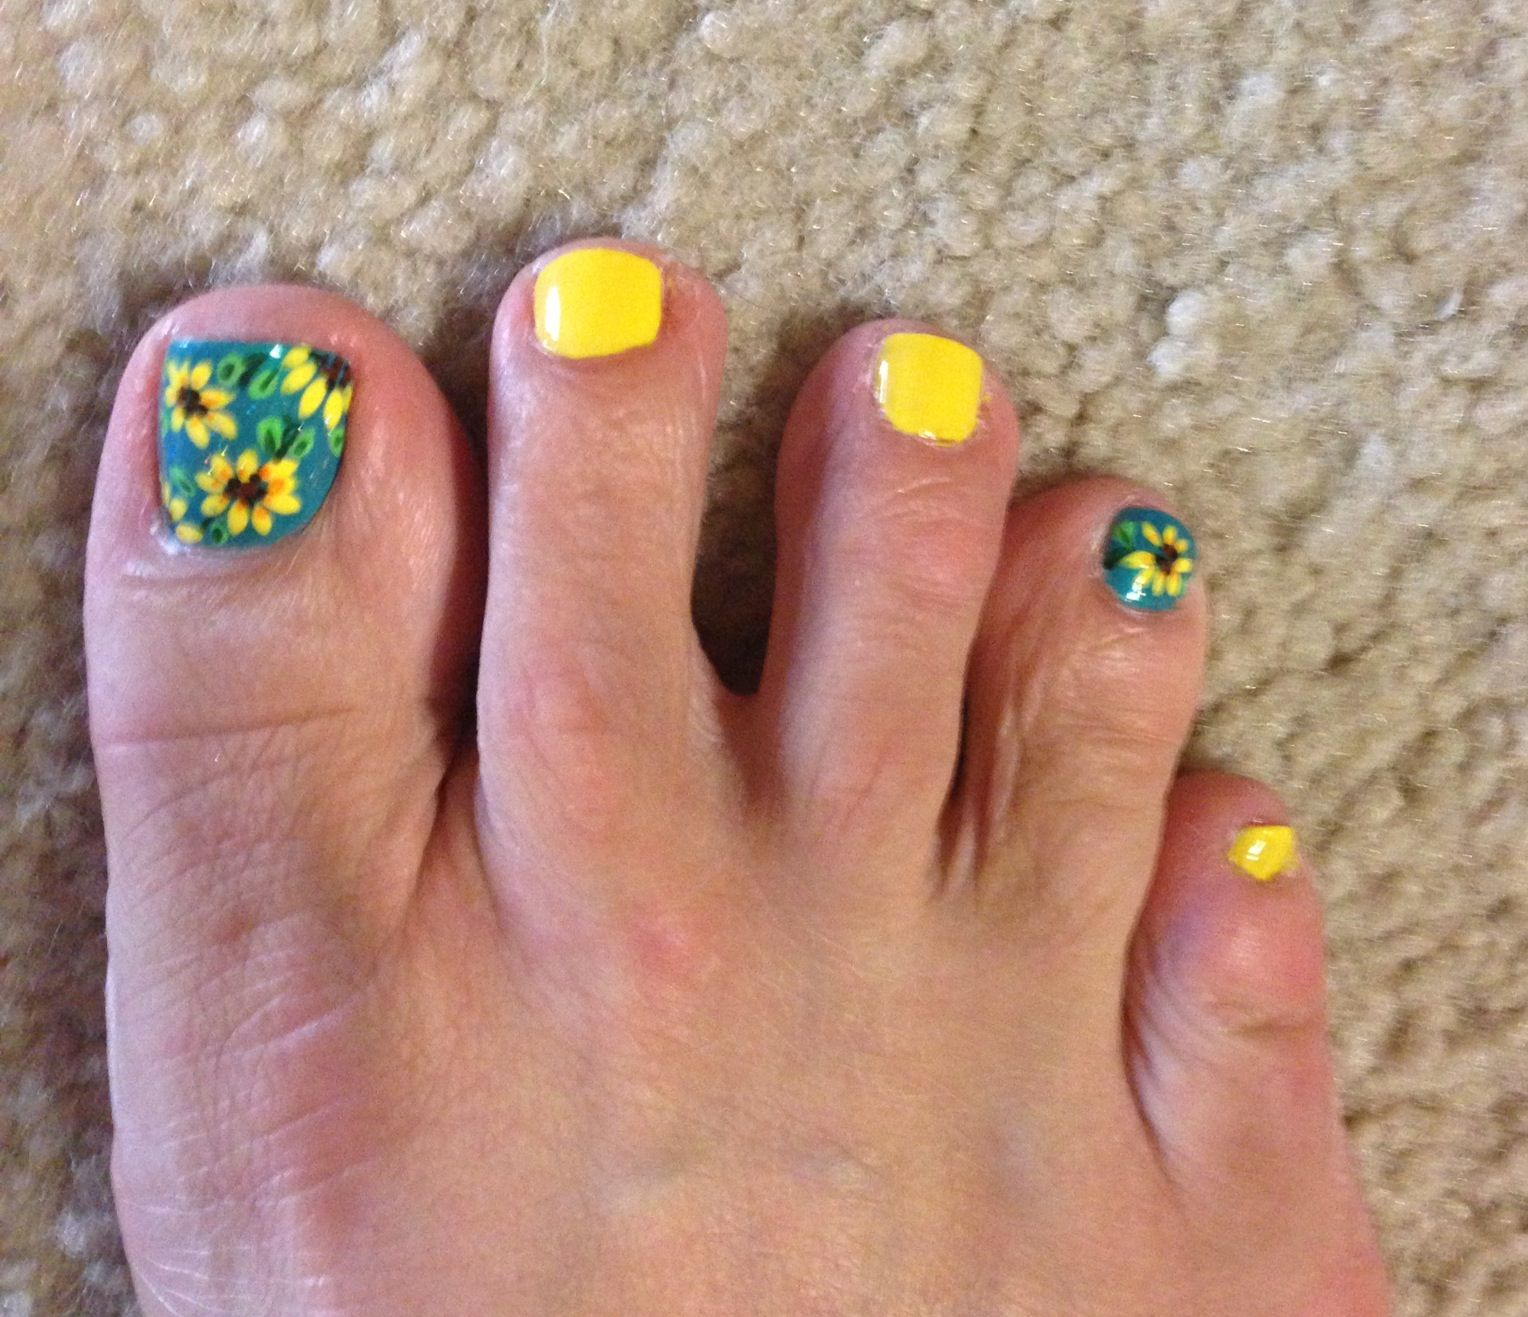 Yellow Nail Polish Toenails: Sunflower Toenail Art By Luanne Nye. LOVE IT!